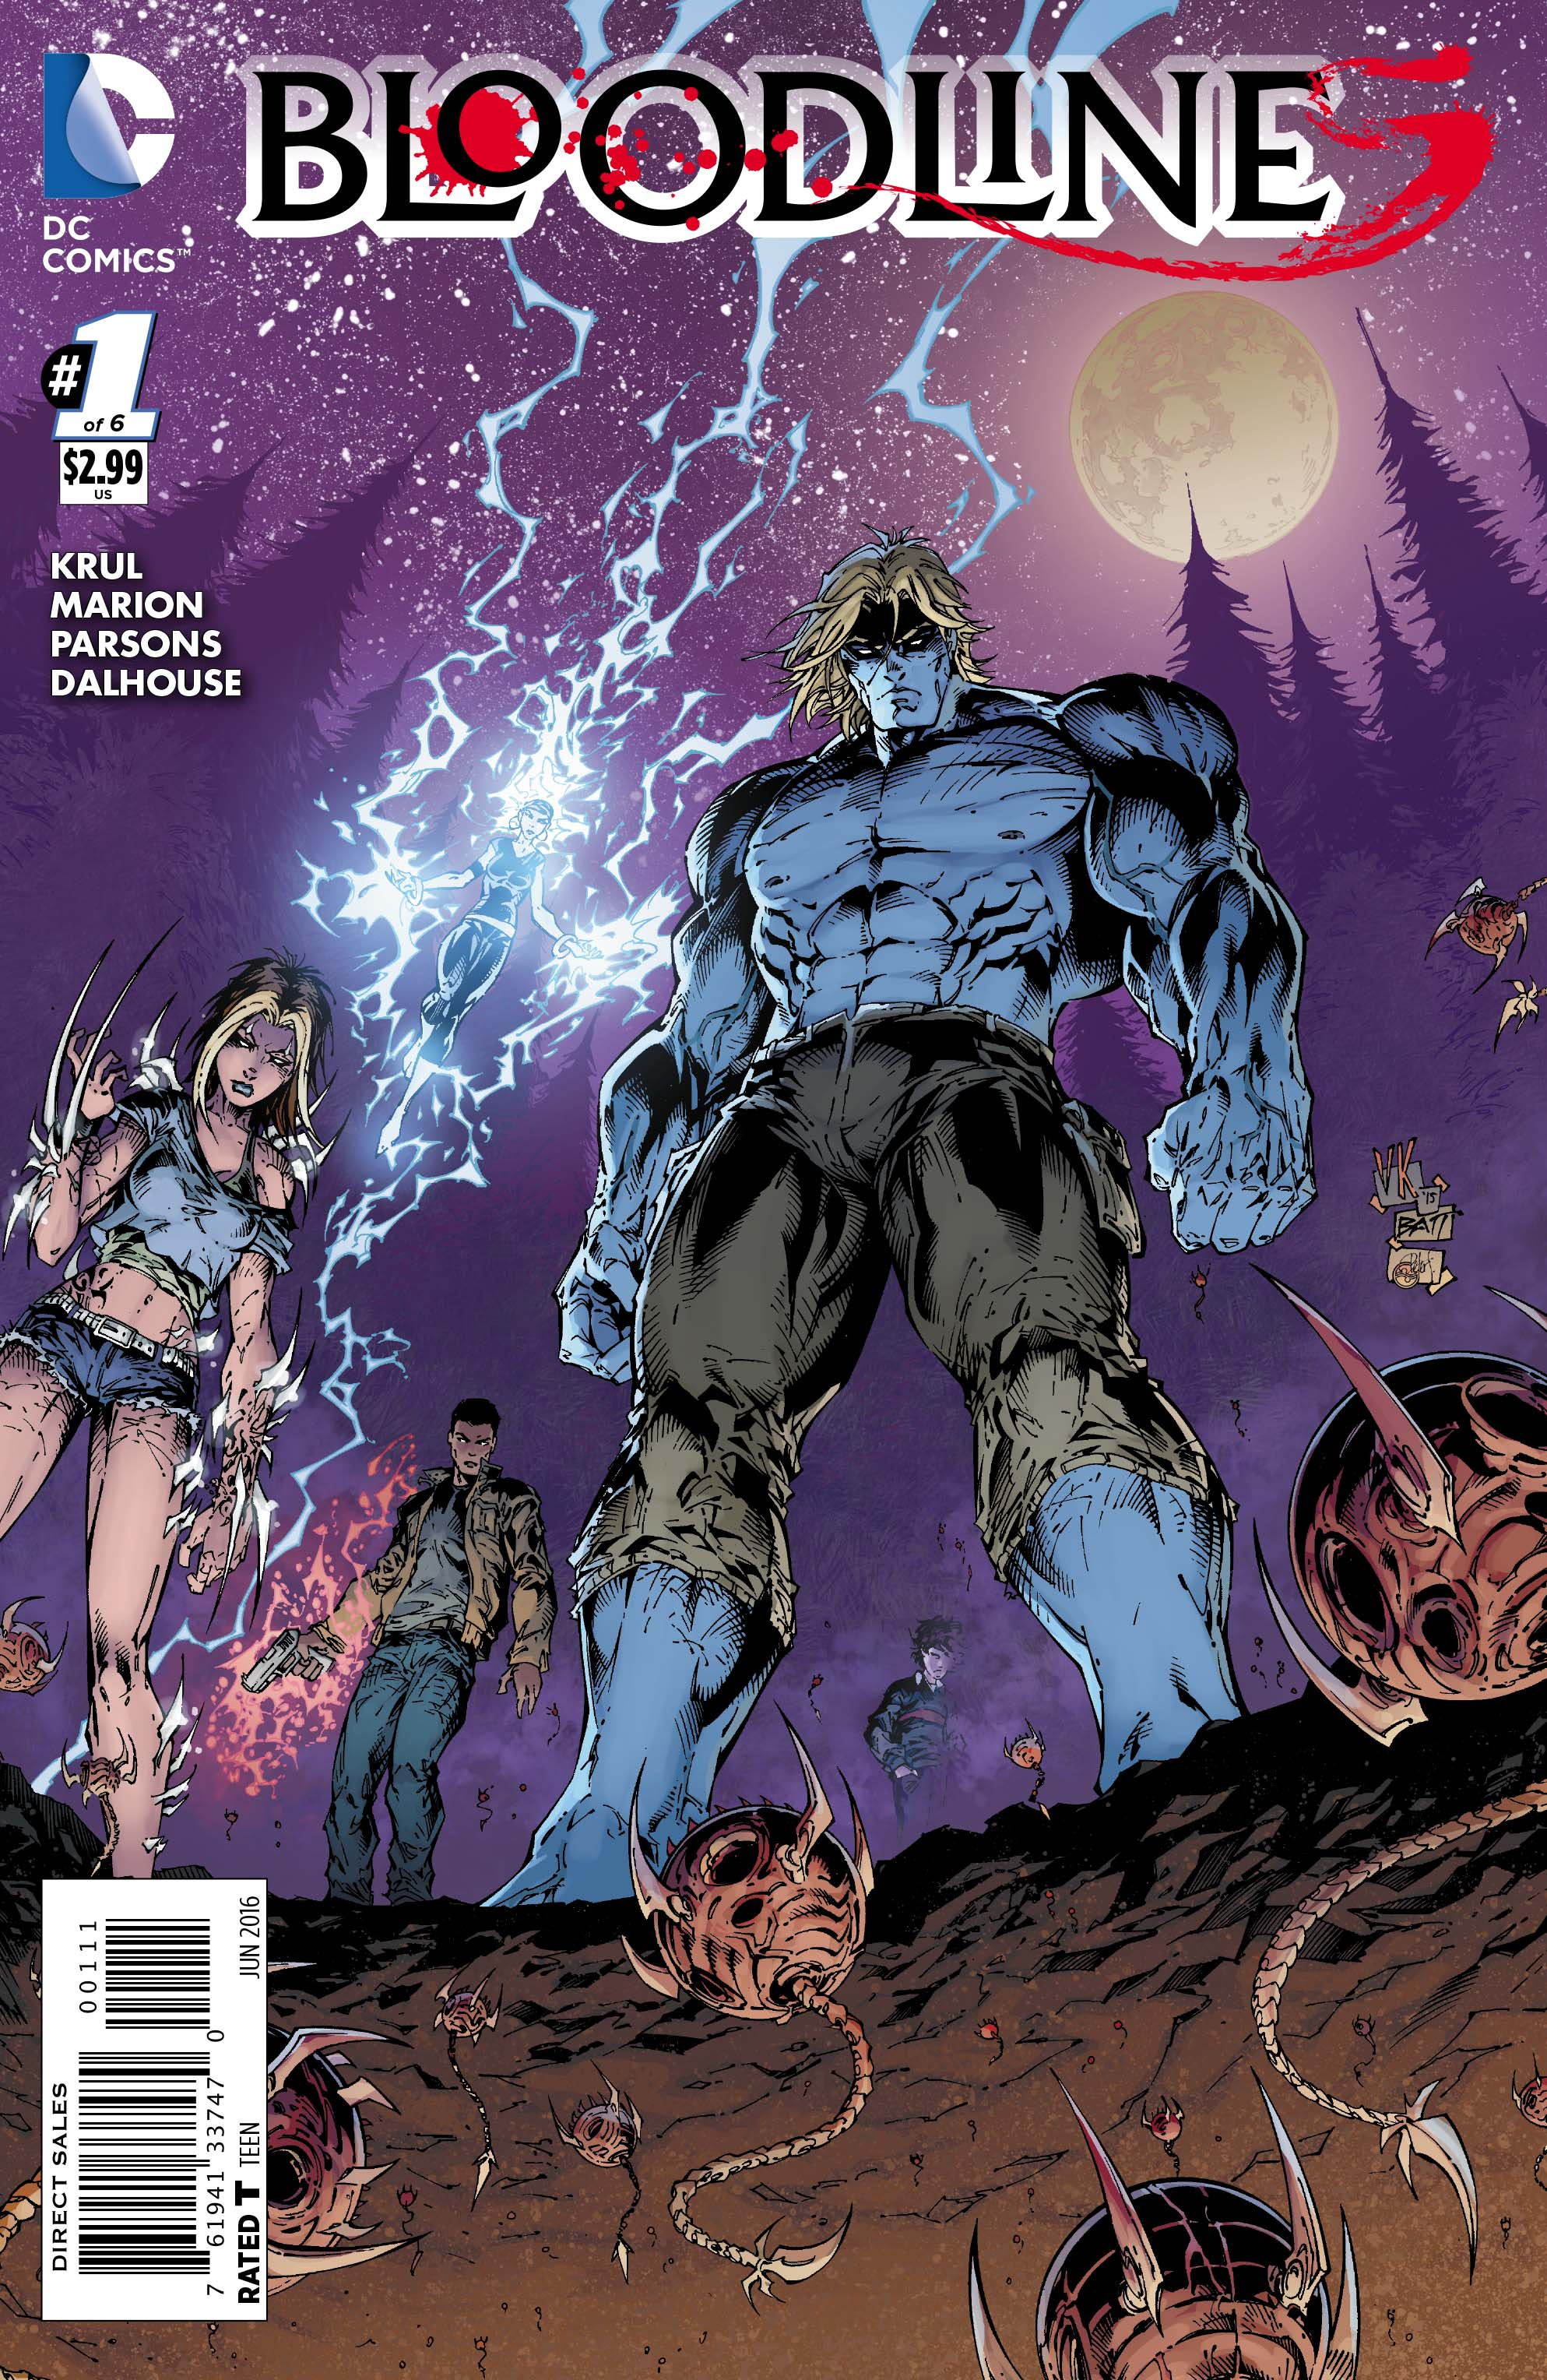 Review Bloodlines #1